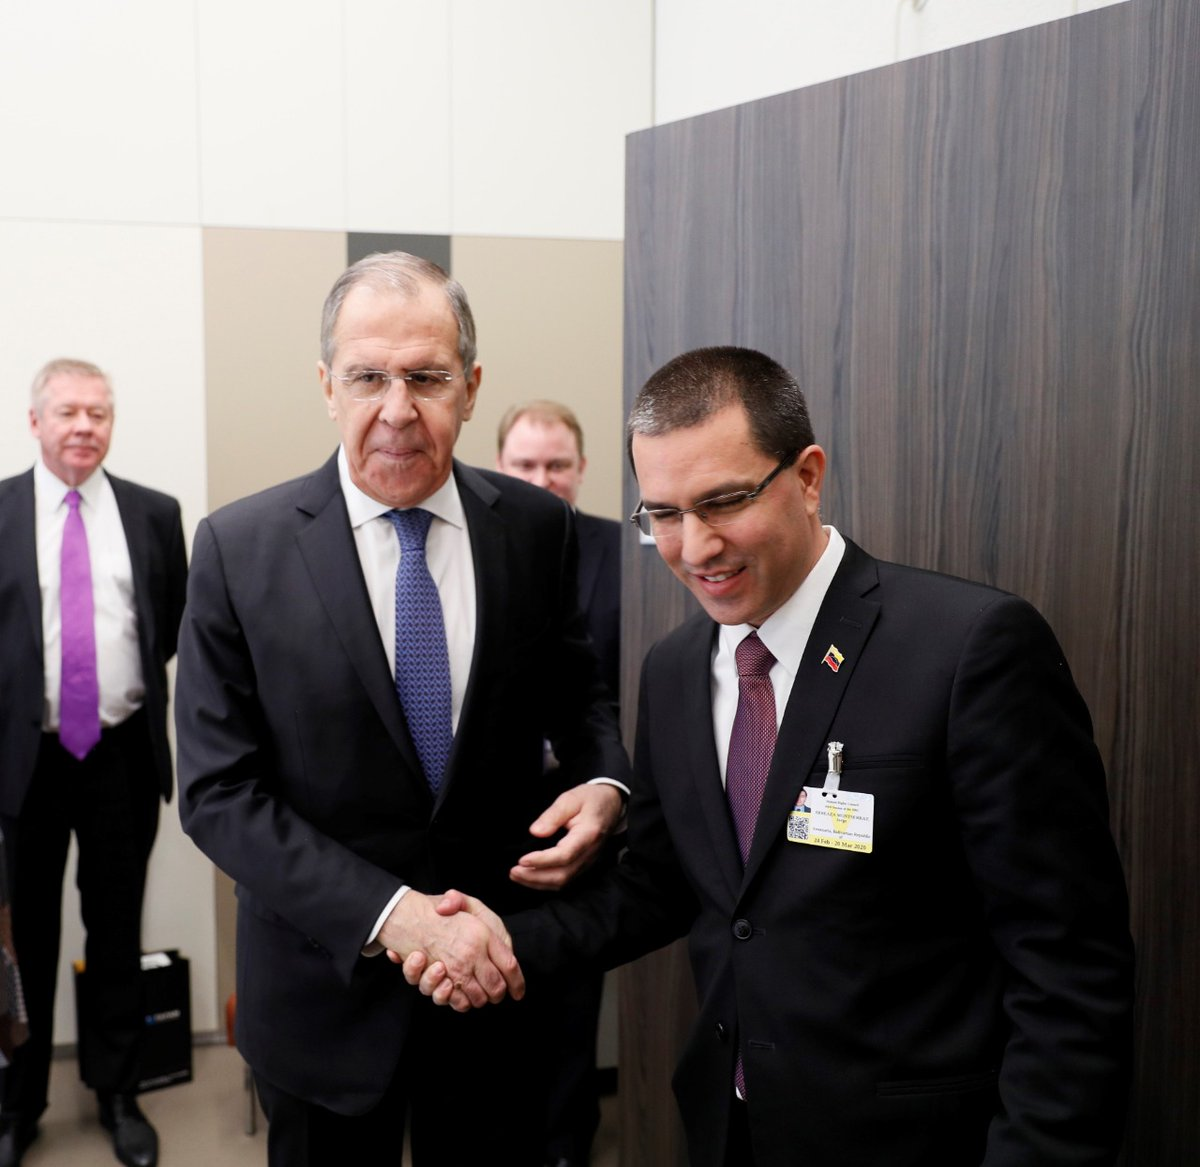 Sergey Lavrov met with the People's Power Minister for Foreign Relations of the Republic of Venezuela @jaarreaza. #Russia #Lavrov #Venezuela #Diplomacy<br>http://pic.twitter.com/ozgG9wFiS4